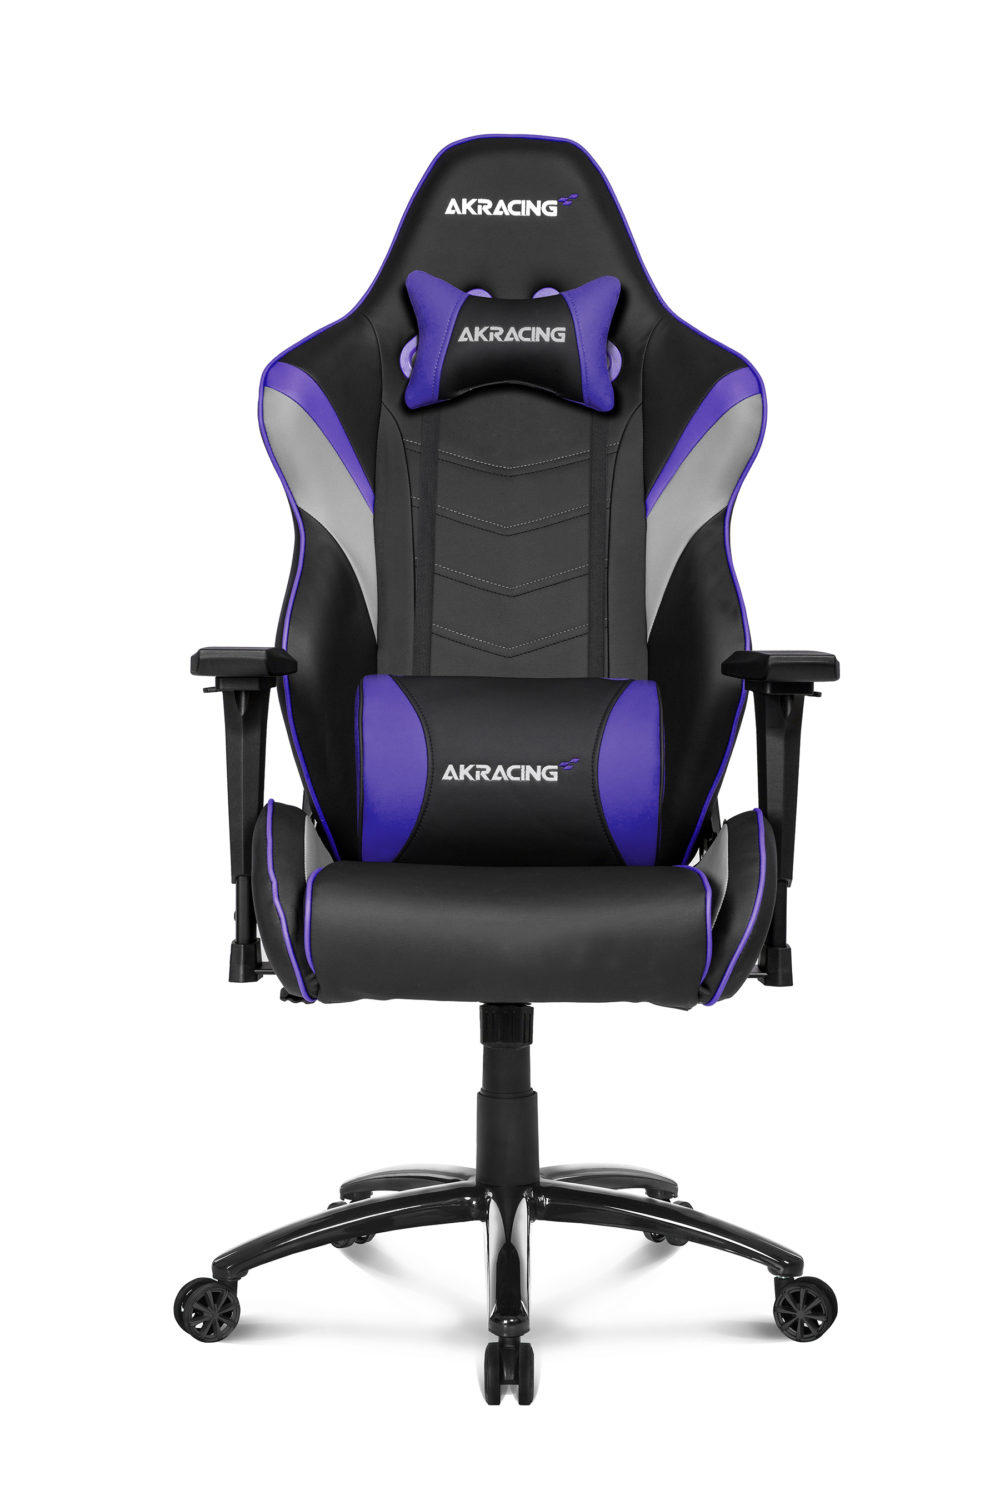 AKRacing Core LX gamestoel indigo